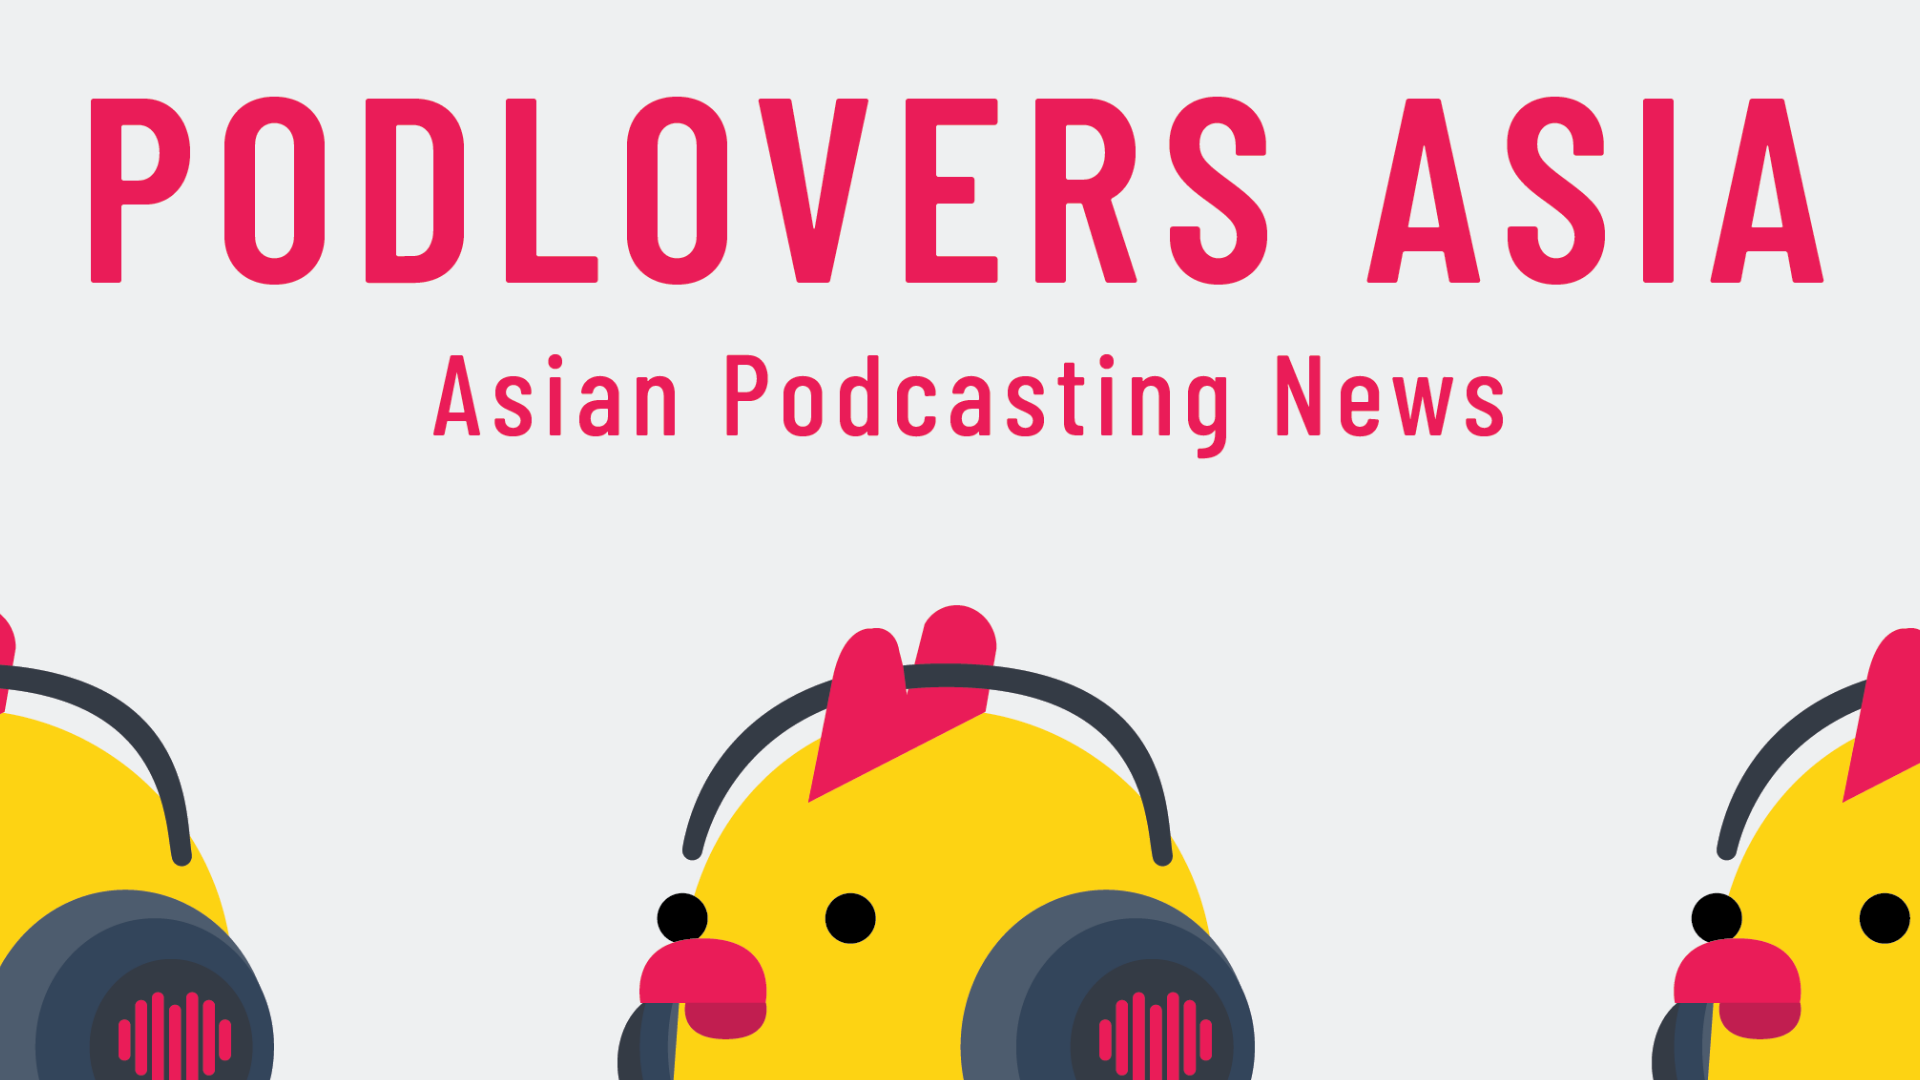 Building Podcast Network Asia, Podmetrics.co and more with Ronster Baetiong of Hustleshare